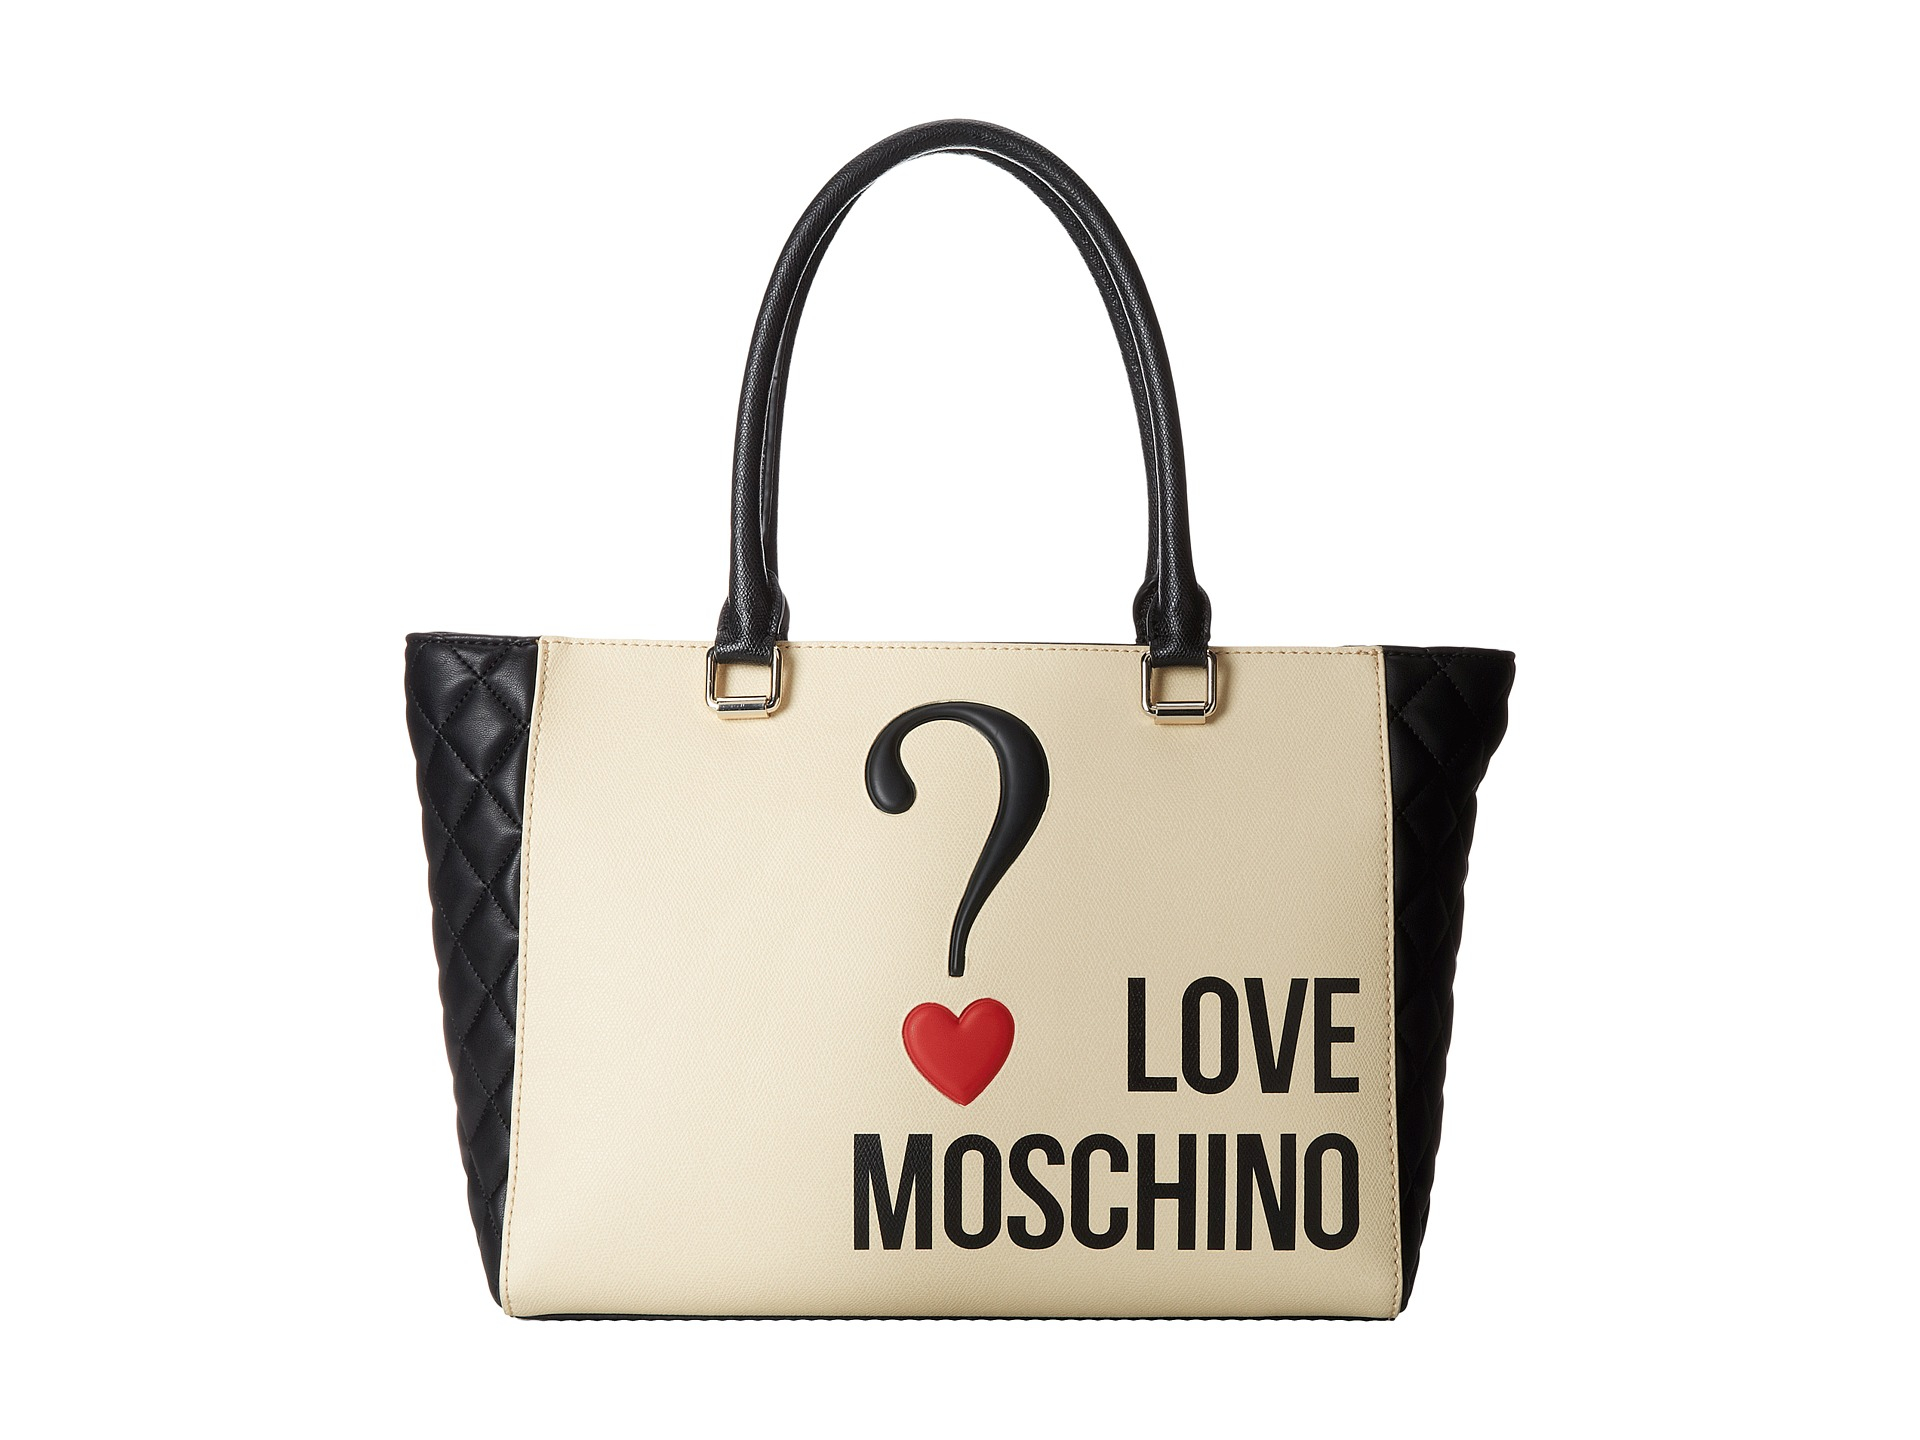 c06a4b00c6 Love Moschino Question Mark Bag in White - Lyst